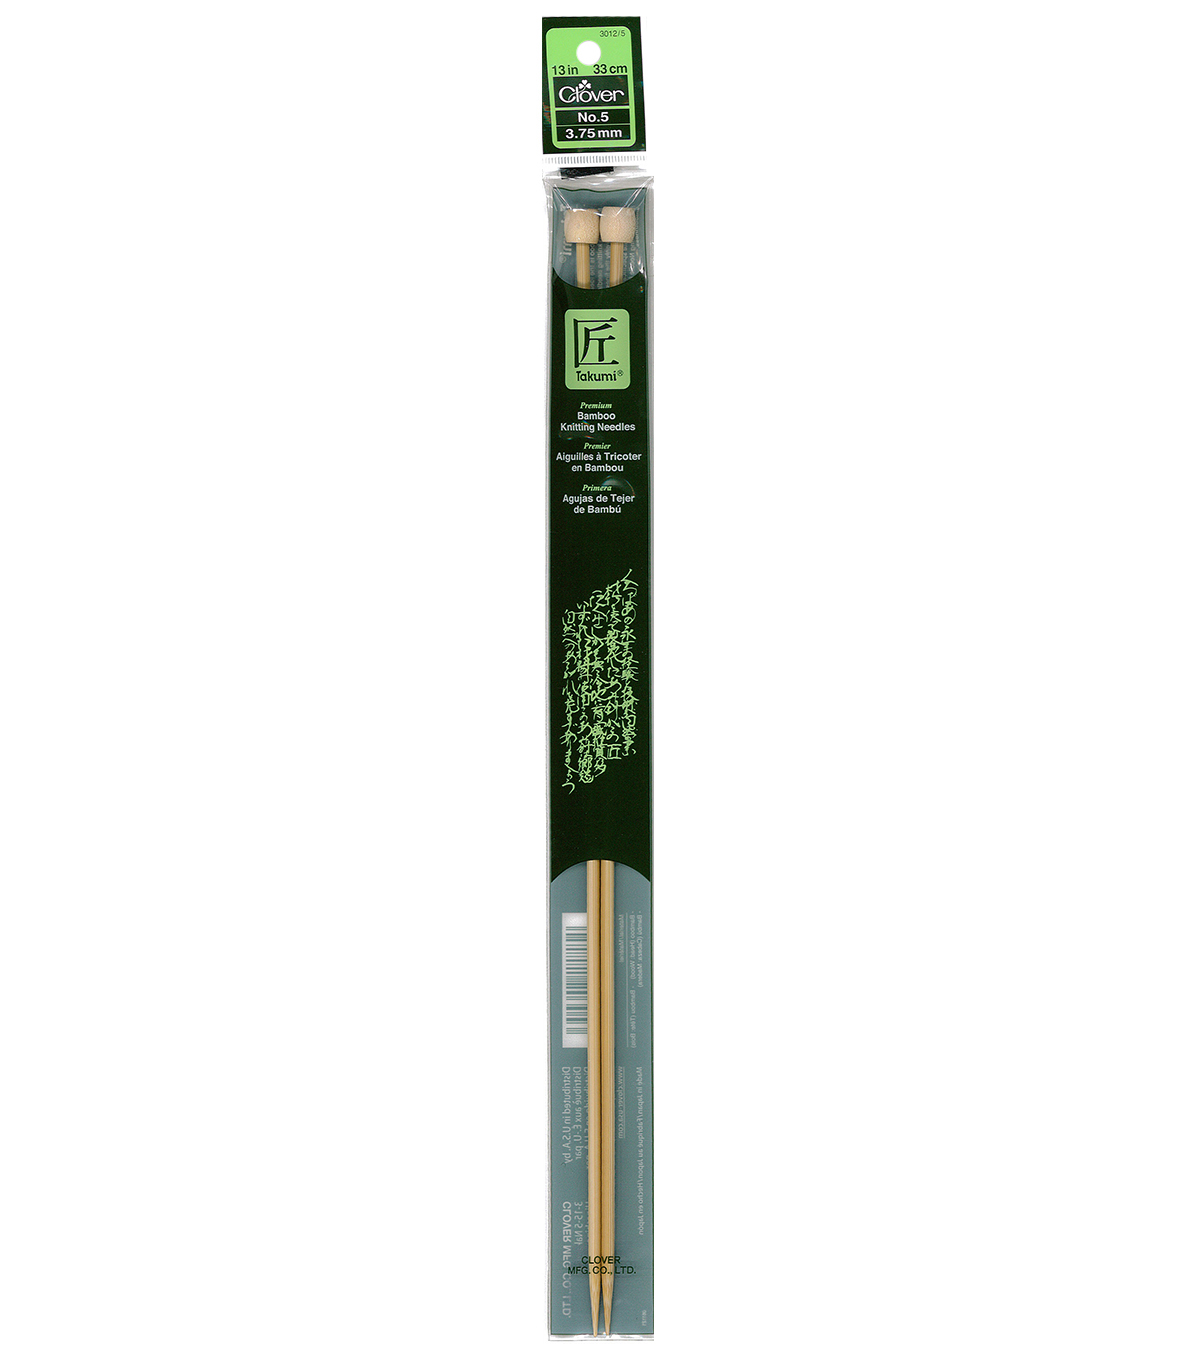 Clover Takumi Bamboo Knit Needle-Single Pt. 13\u0022-Size 5